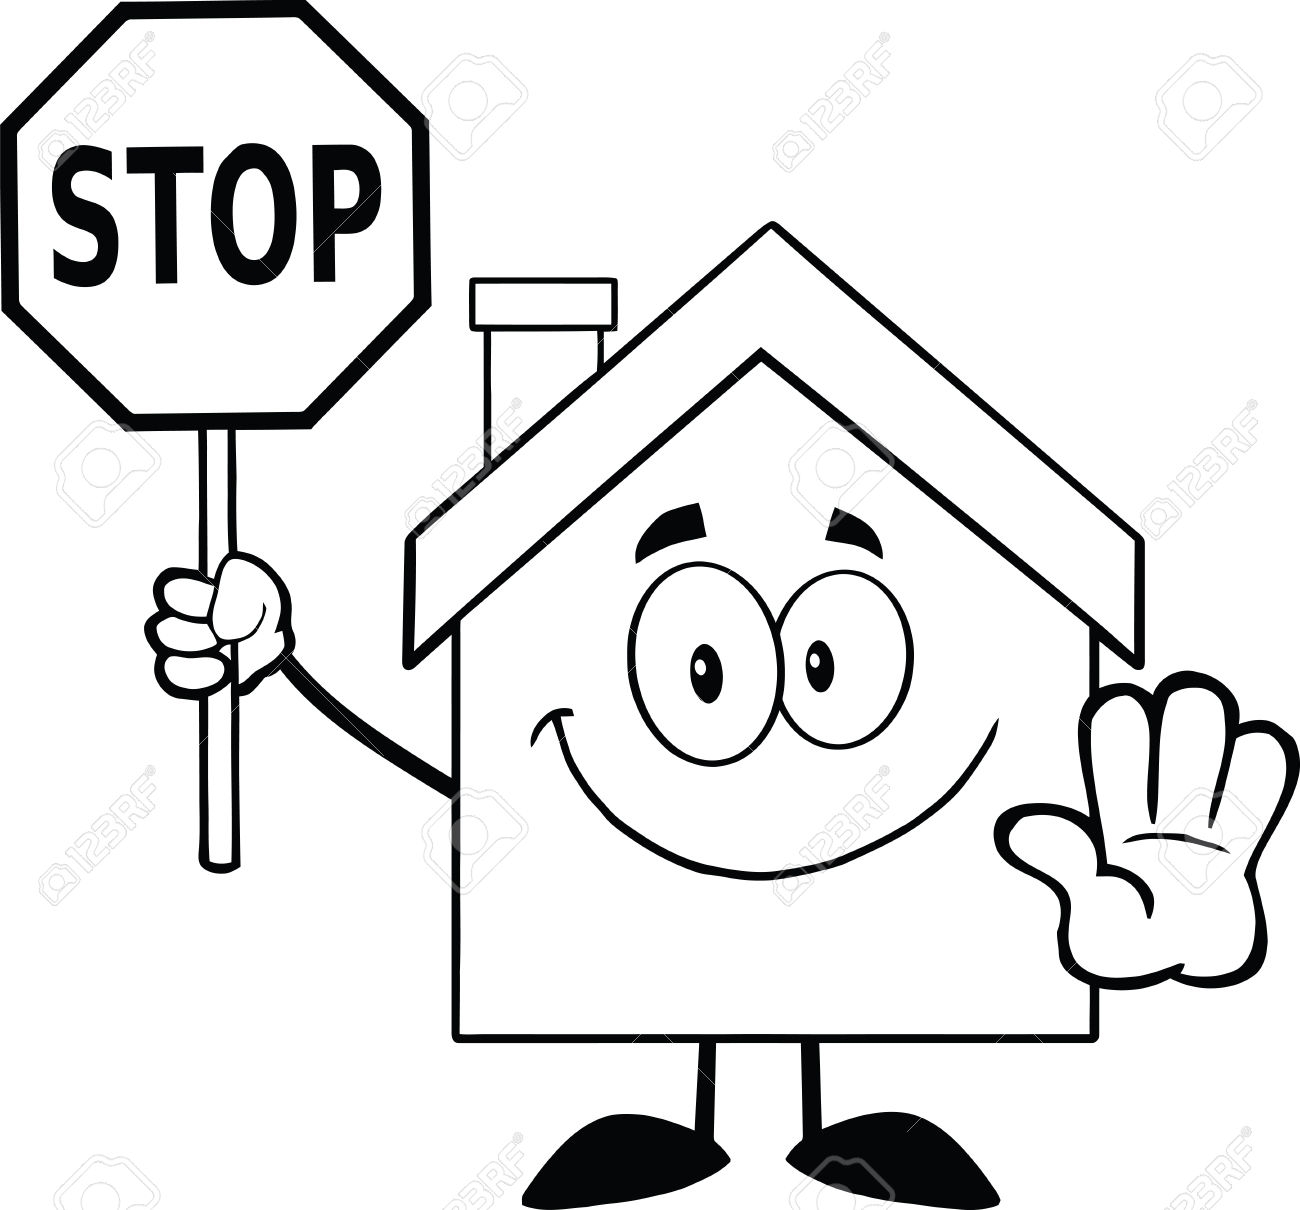 1300x1210 15 Stop Sign Picture Black And White Ideas Black And White Pictures